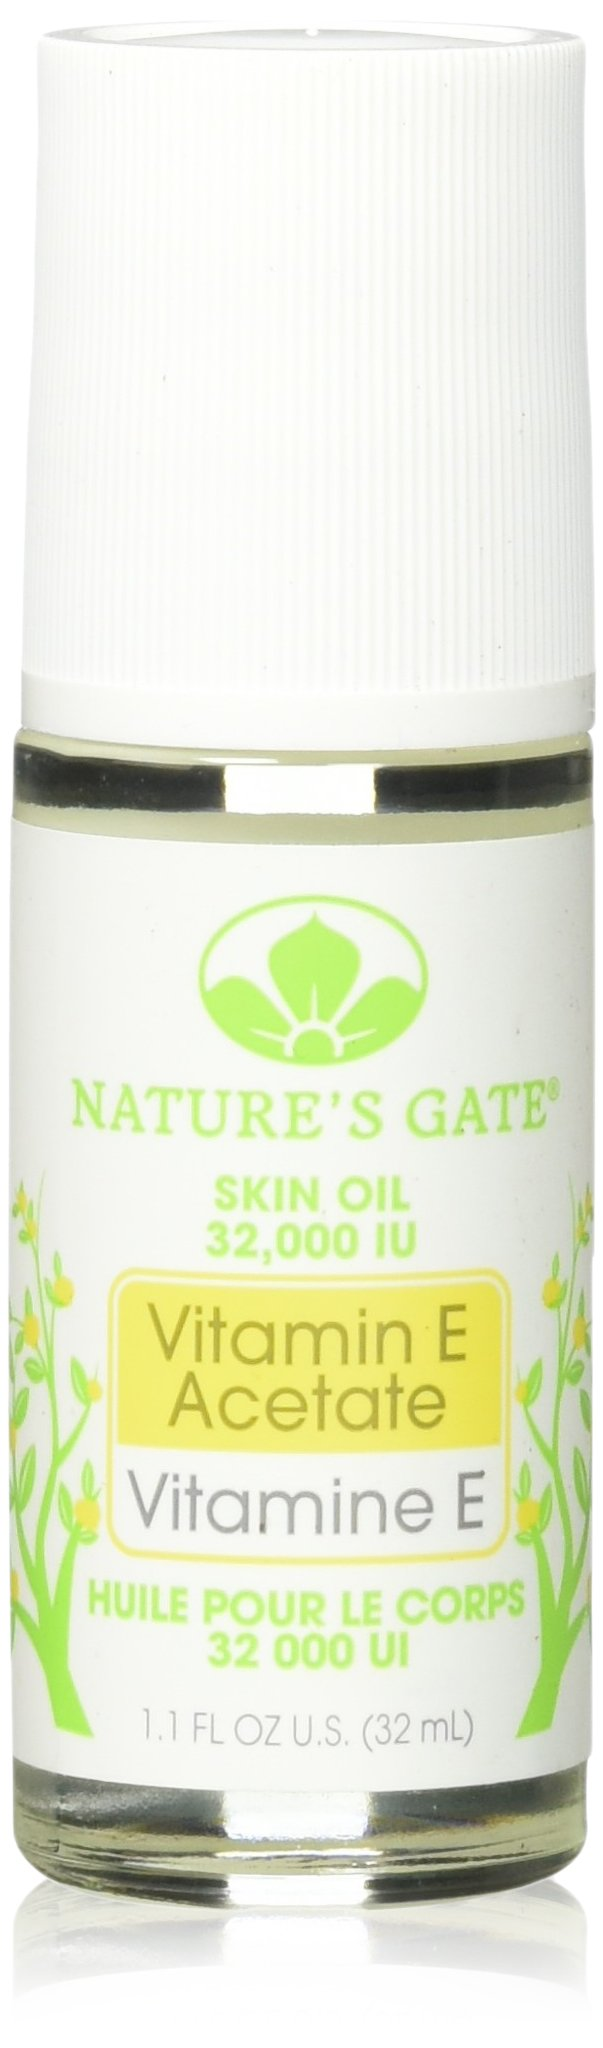 Natures Gate 32,000 I.U. Roll-on Vitamin E Oil - 1.1 oz